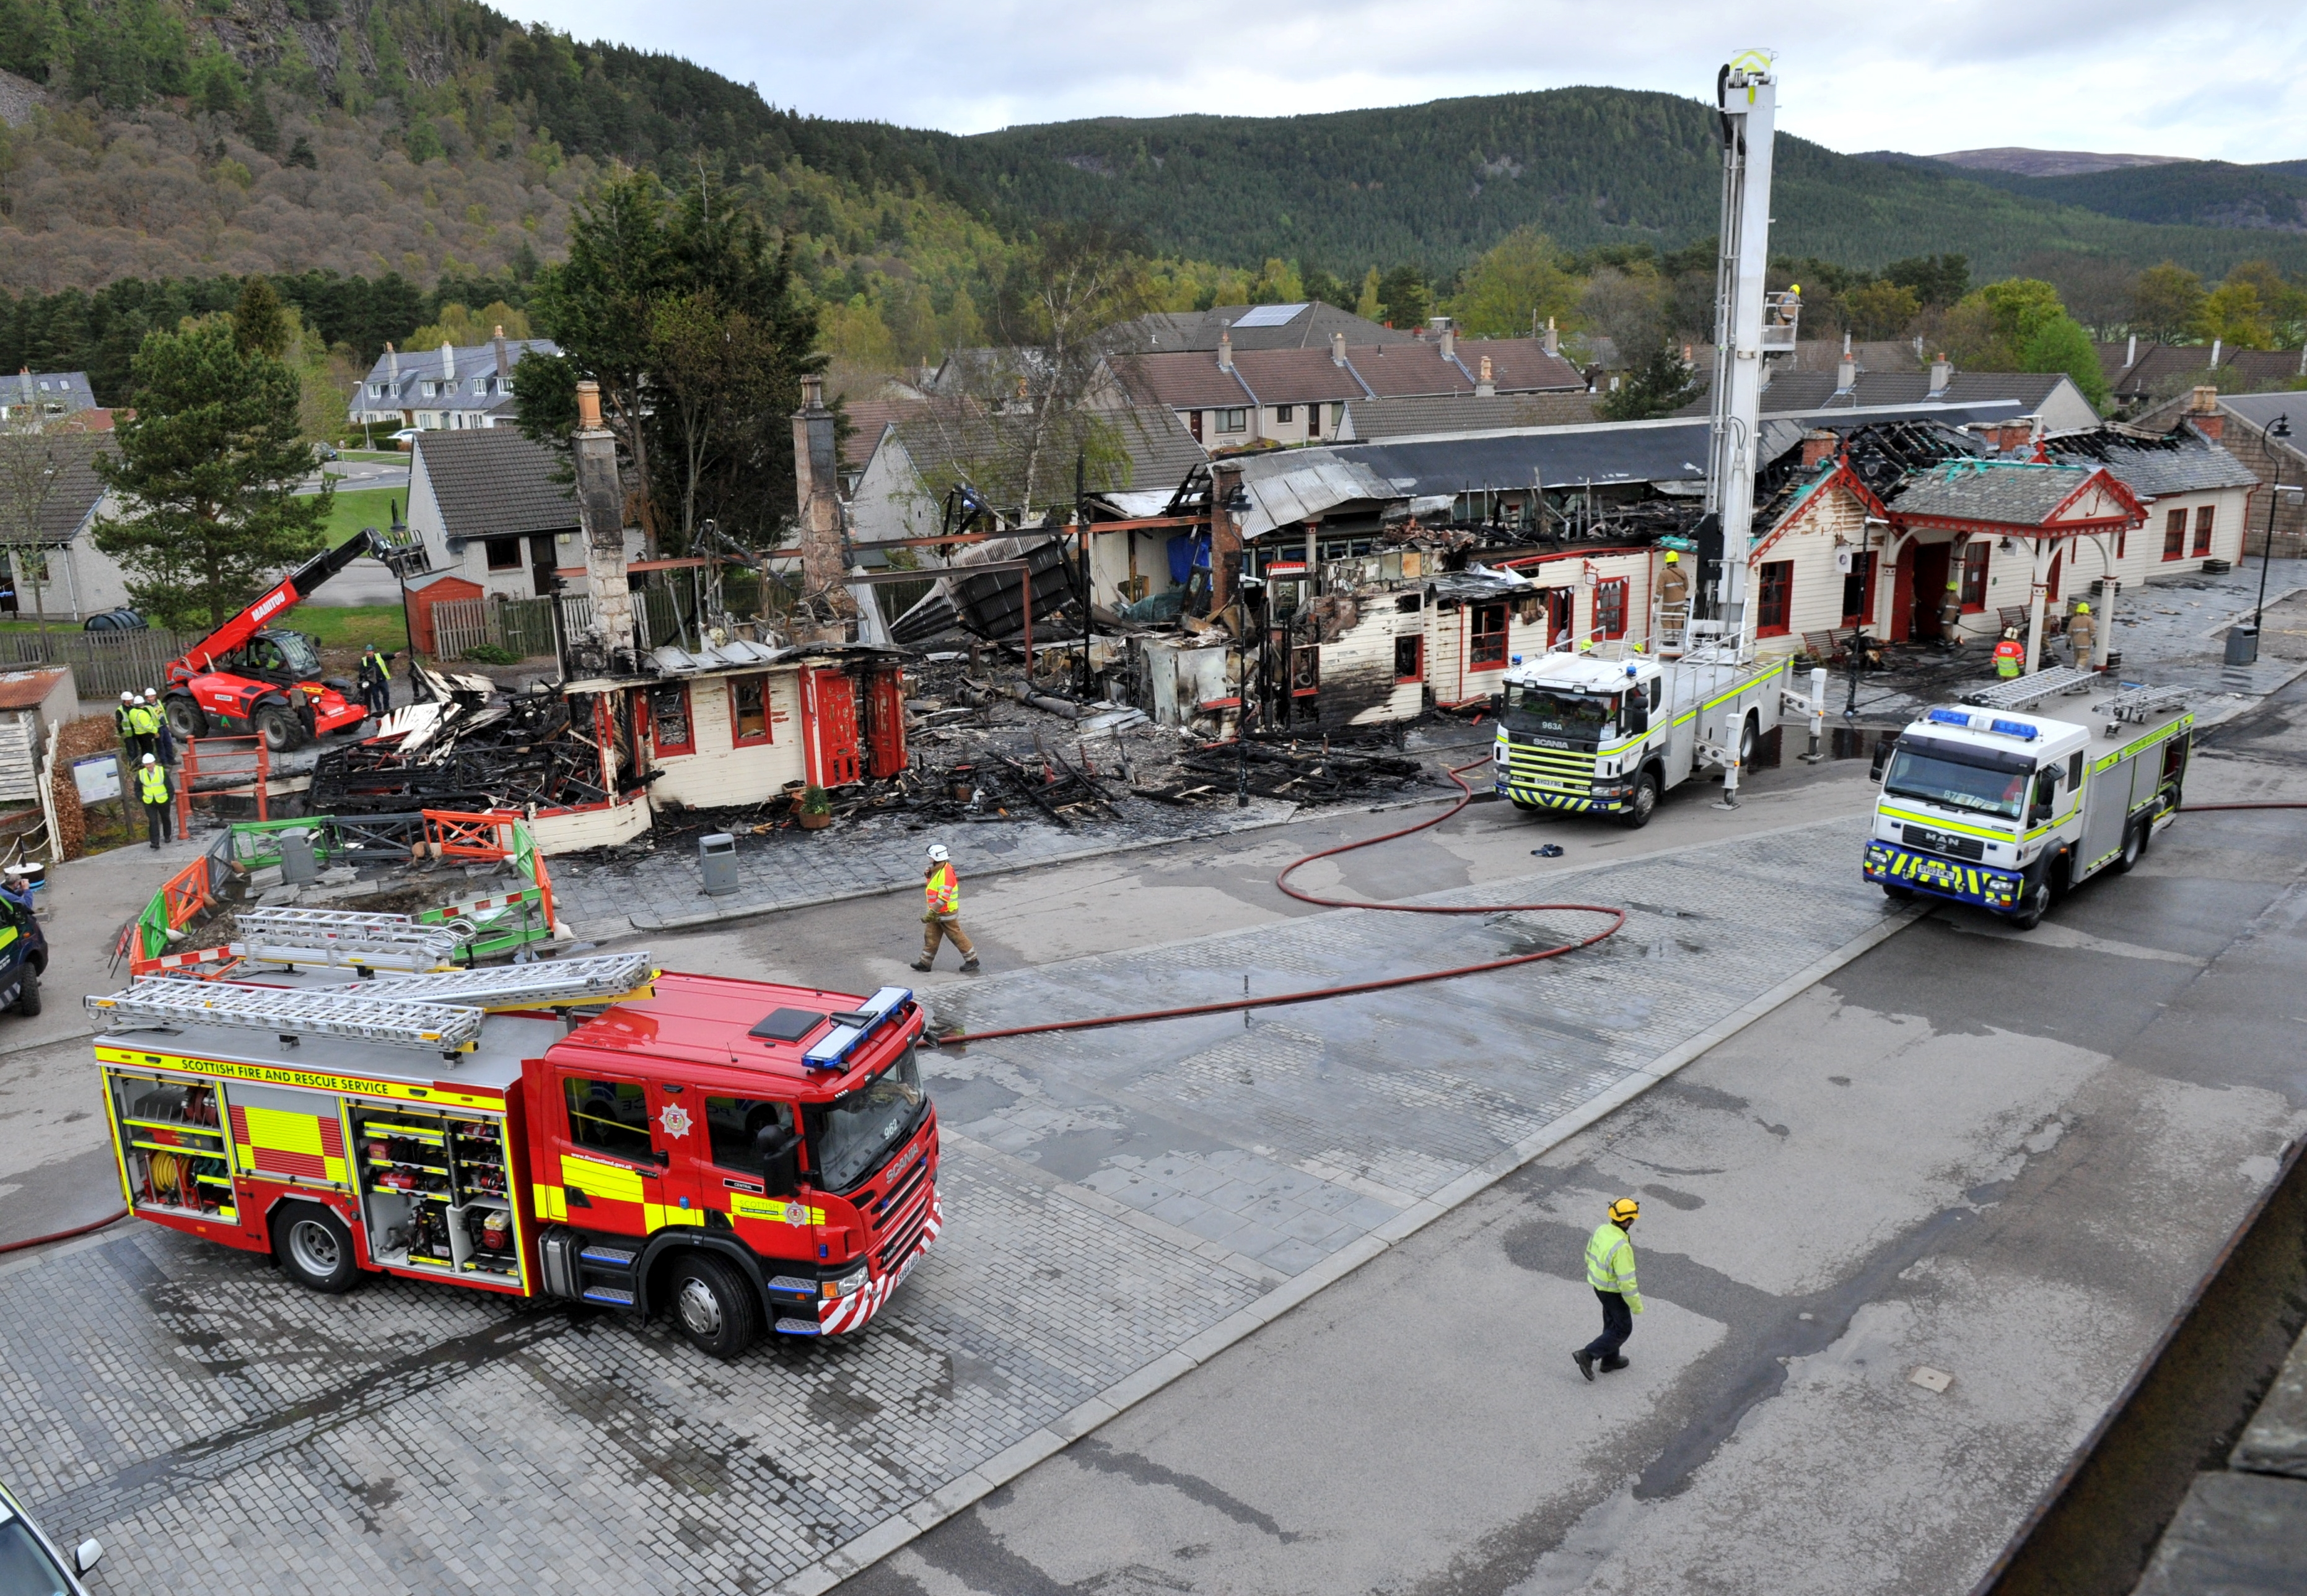 Firefighters save replica Queen Victoria railway carriage following fire at Ballater restaurant